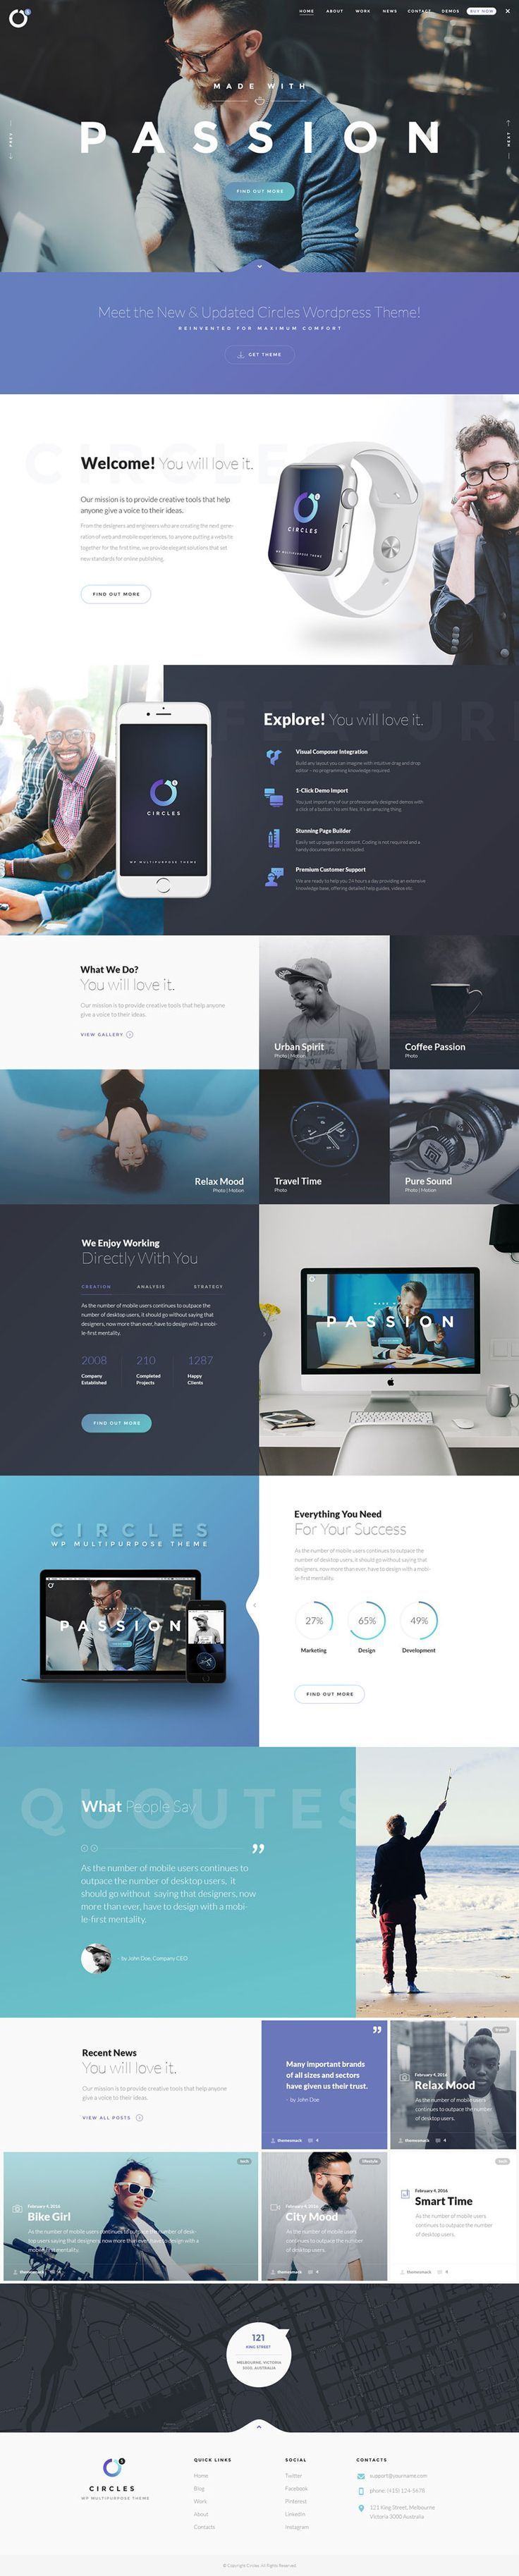 78 best Web Design Inspiration images on Pinterest | Website ...